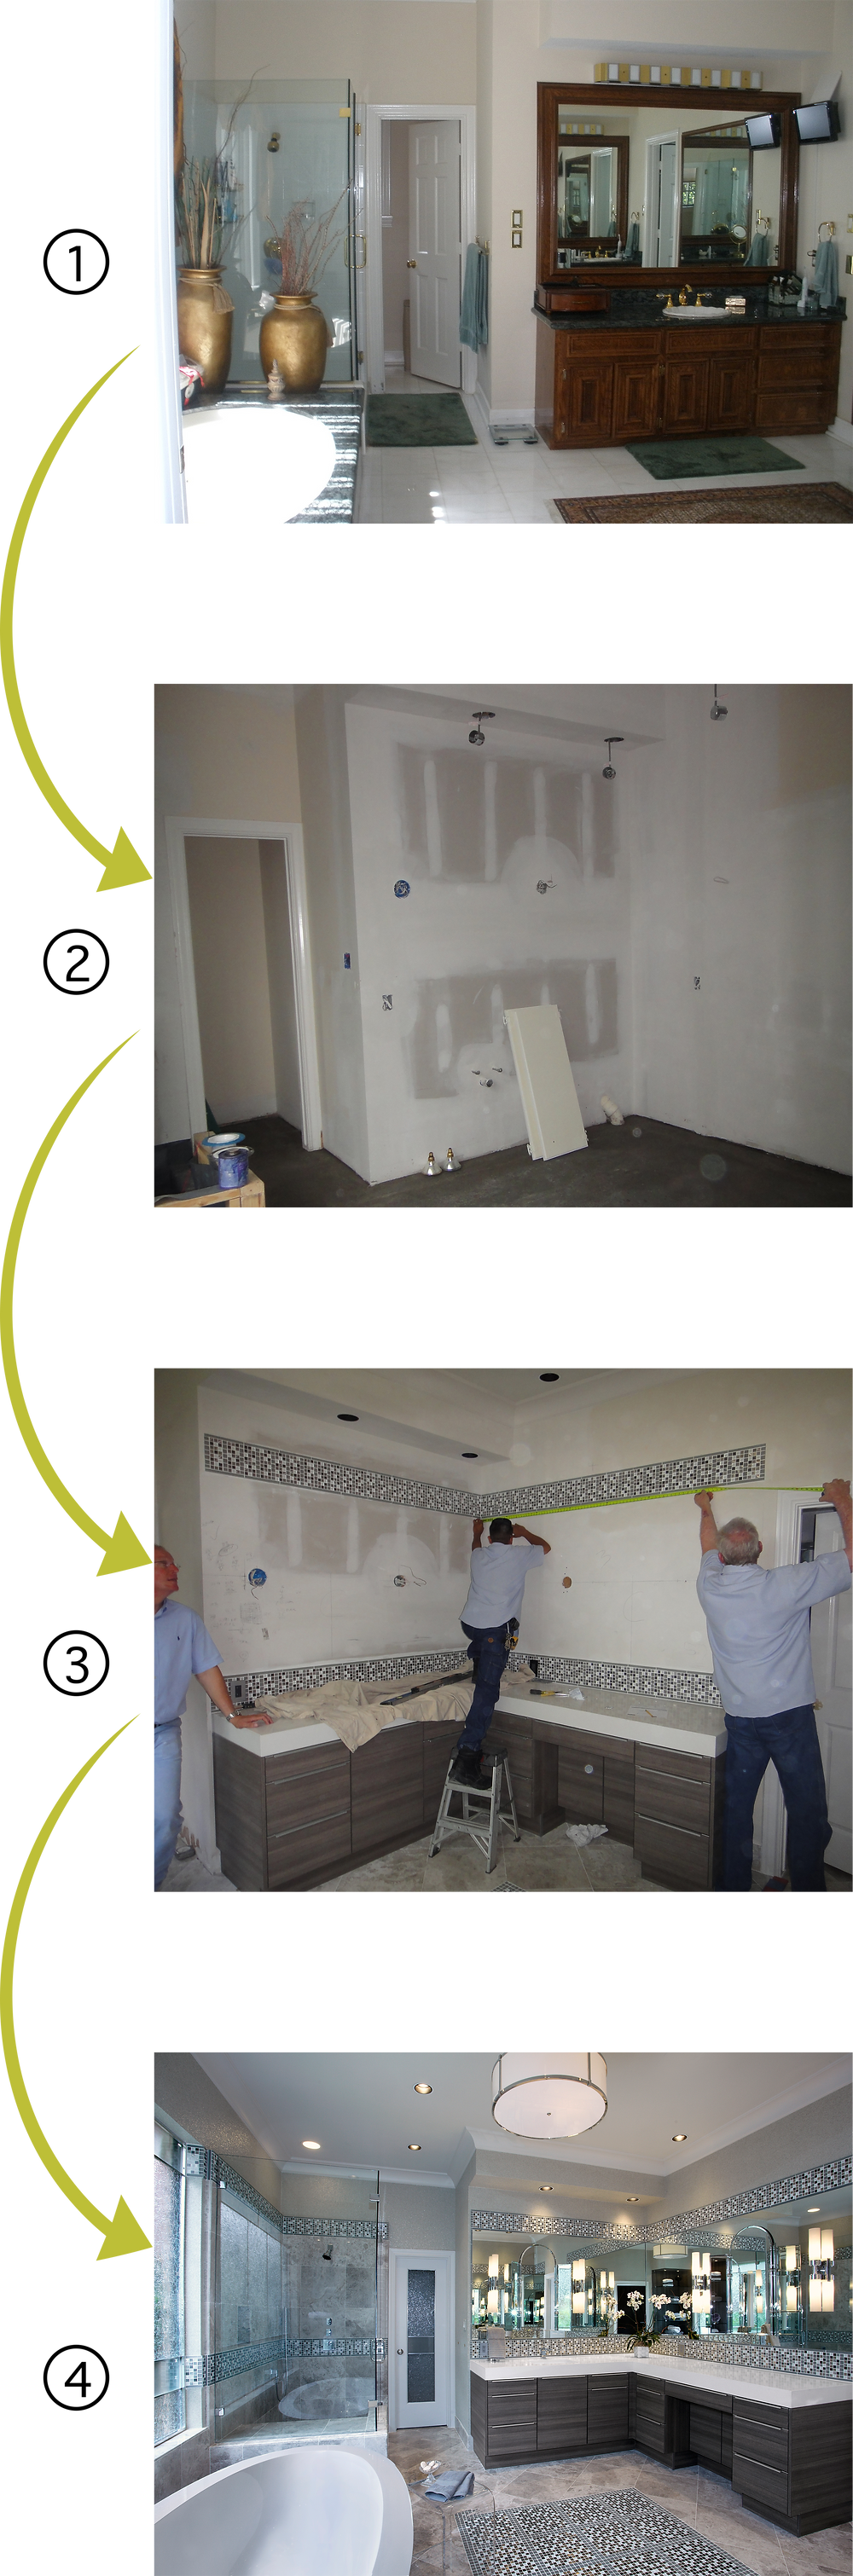 The Bathroom Remodel Process in 4 Steps